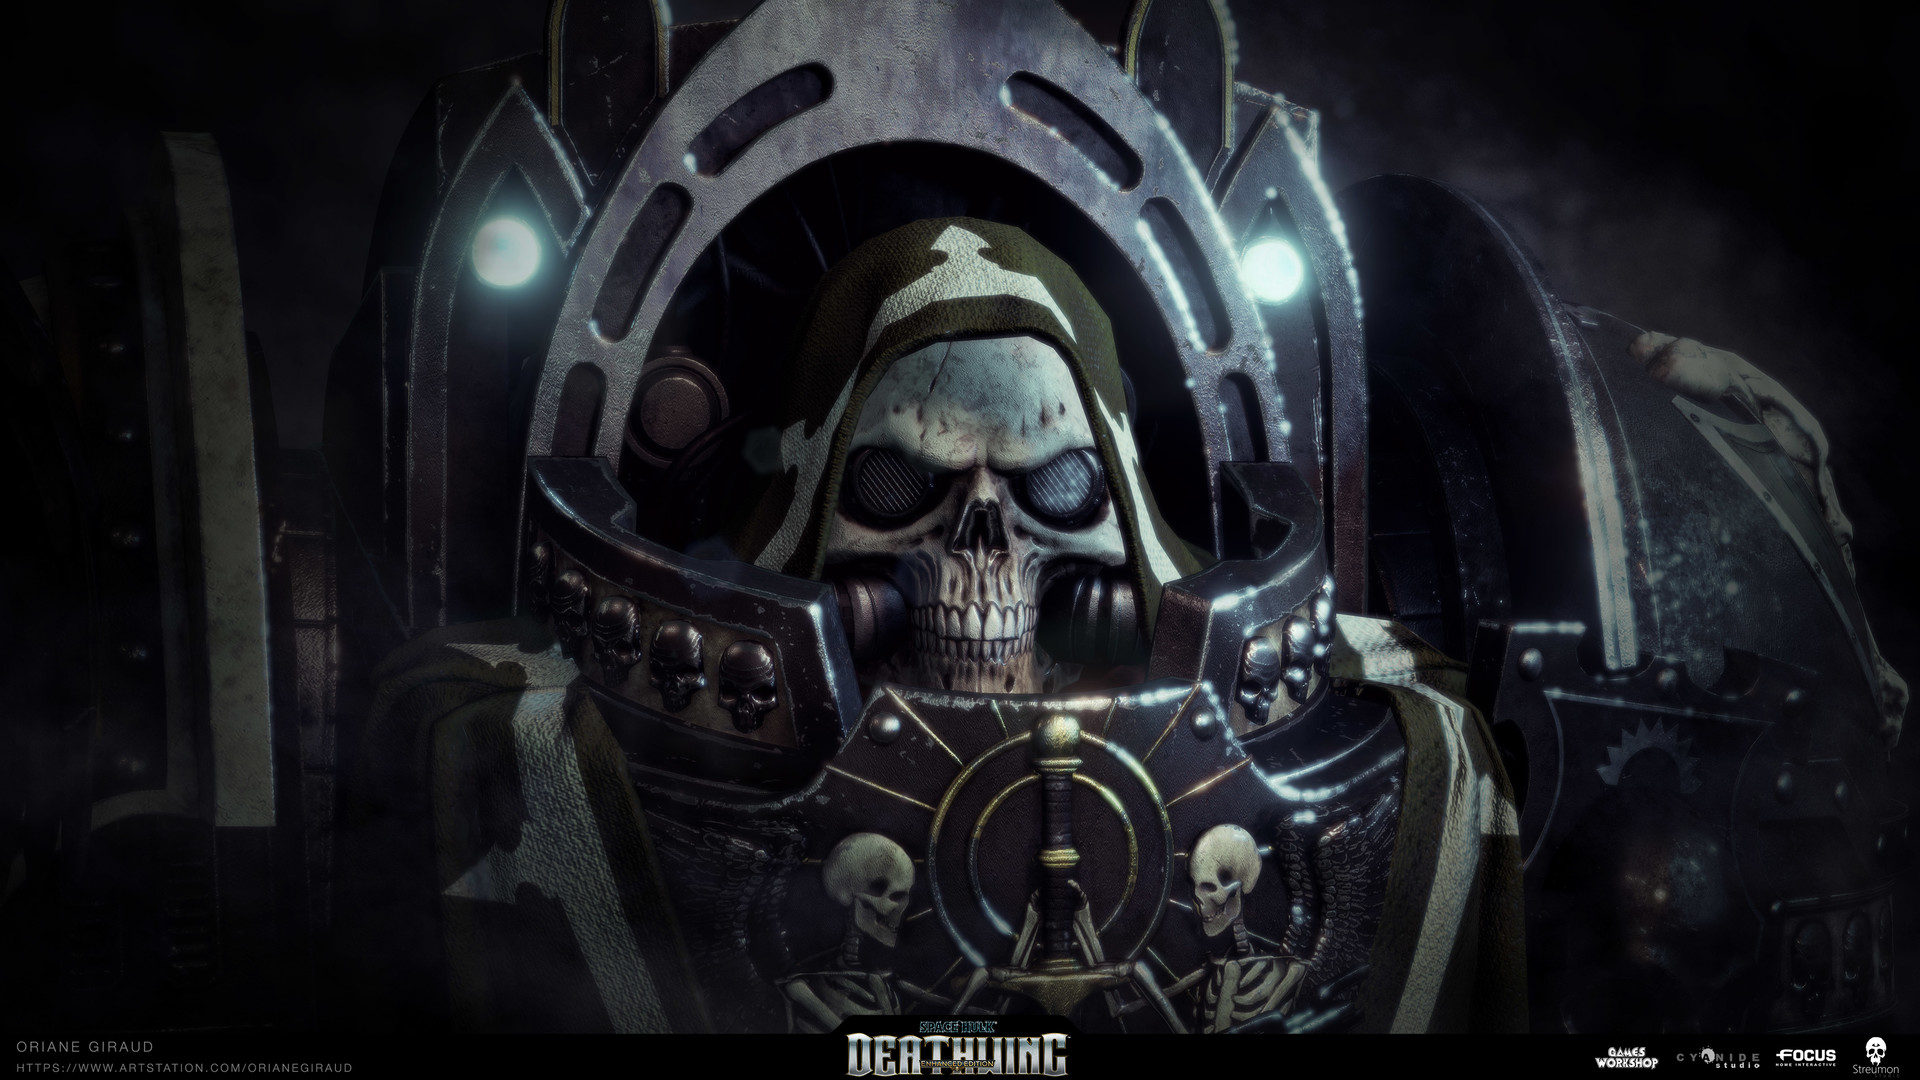 ArtStation - Space Hulk Deathwing - Interrogator Chaplain, Oriane Giraud